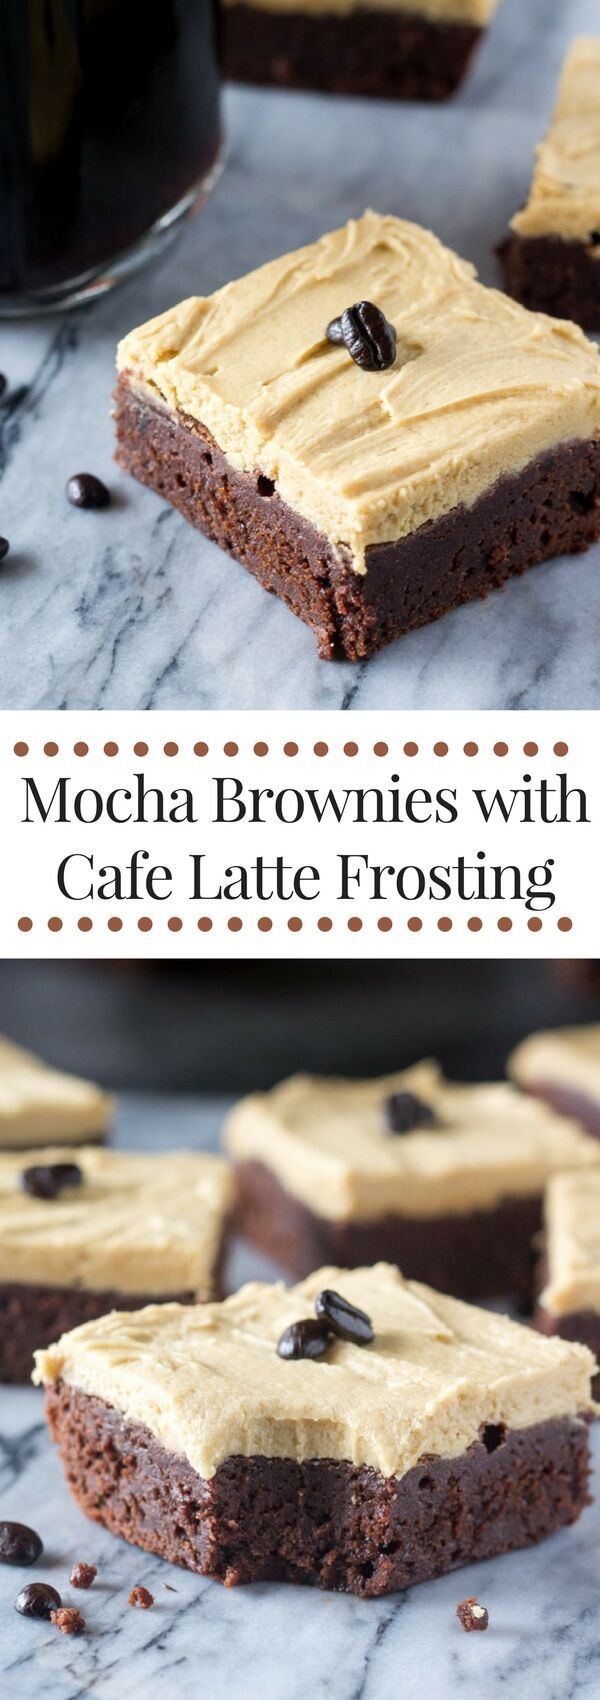 Mocha Brownies with Cafe Latte Frosting                                                                                                                                                                                 More